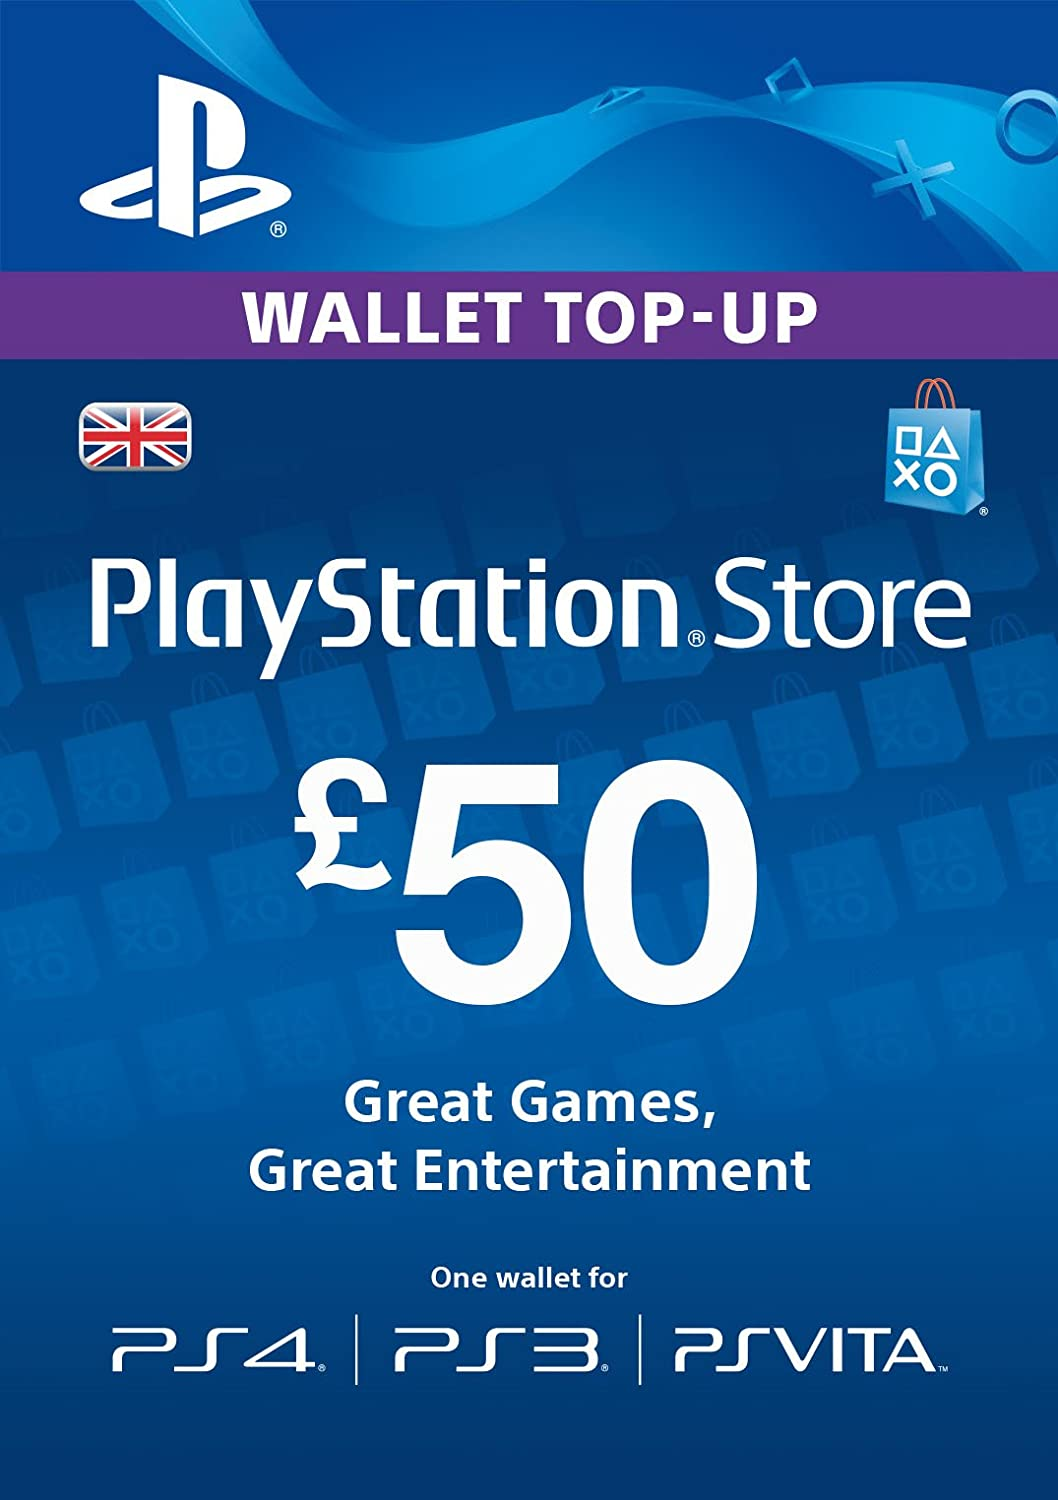 PlayStation PSN Card 50 GBP Wallet Top Up | PSN Download Code - UK ...